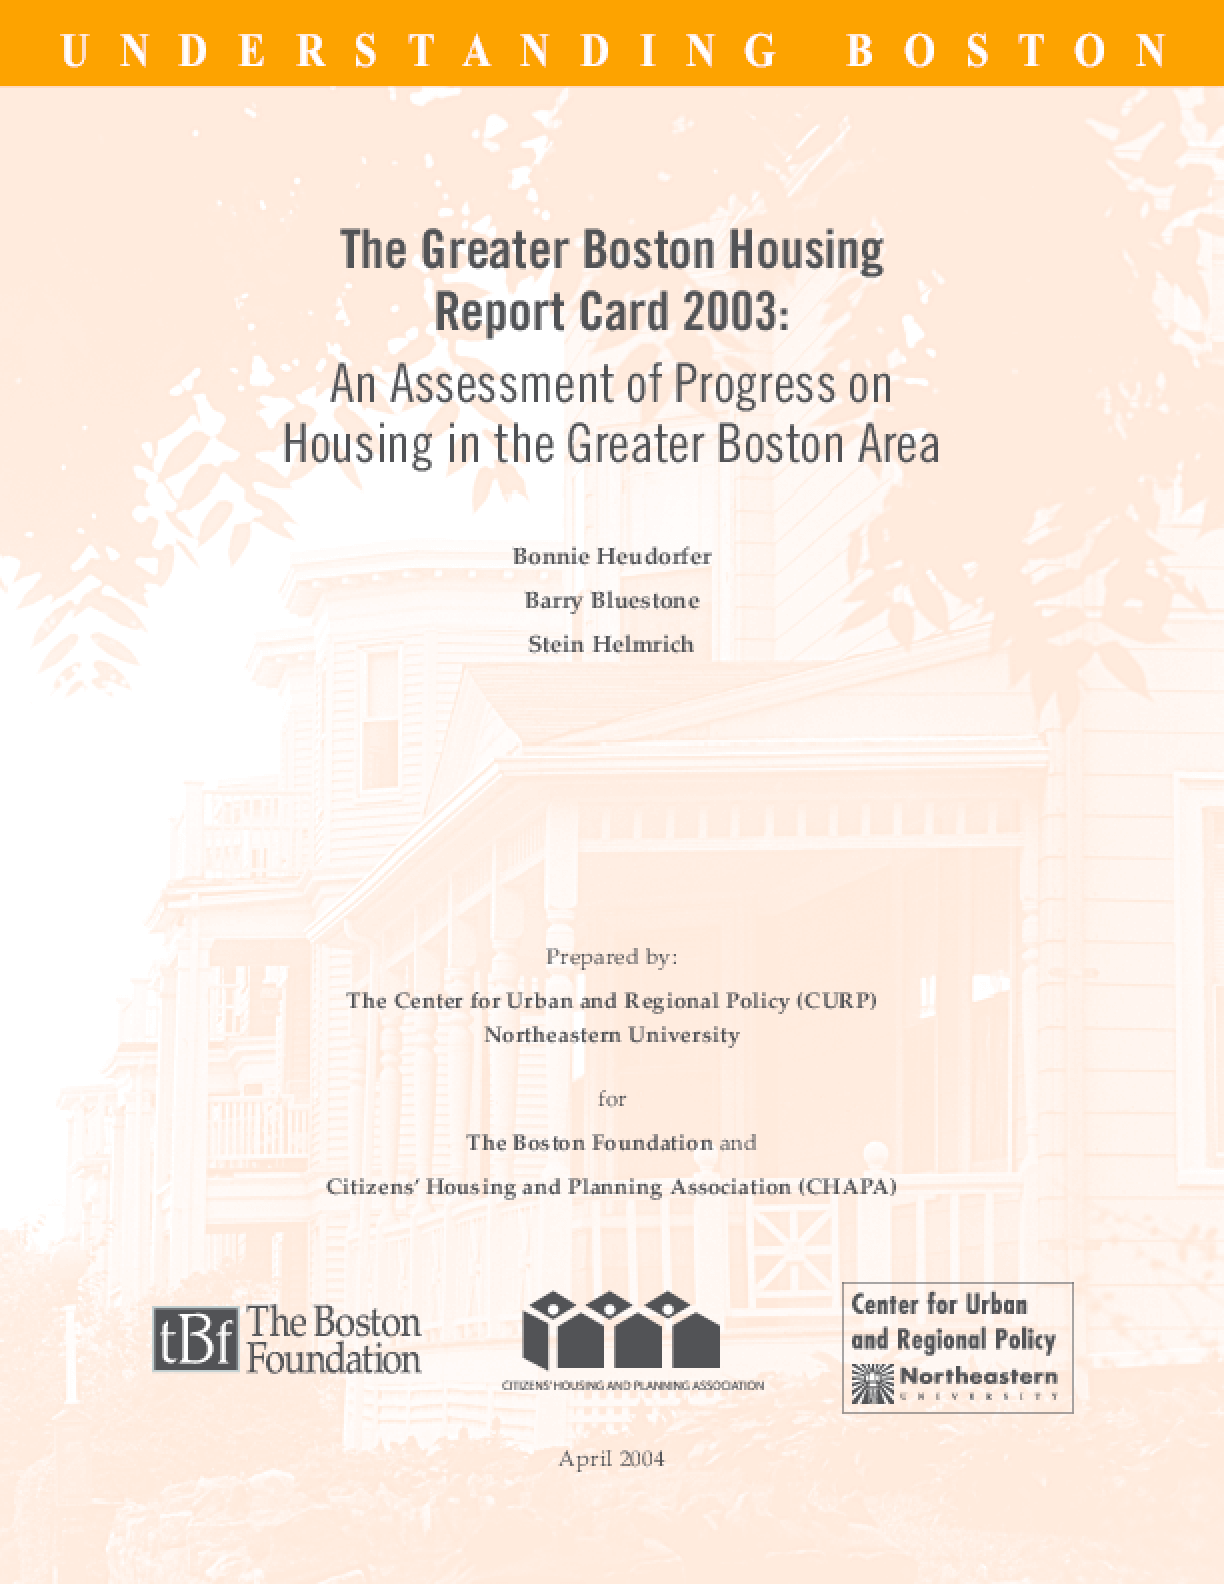 The Greater Boston Housing Report Card 2003: An Assessment of Progress on Housing in the Greater Boston Area